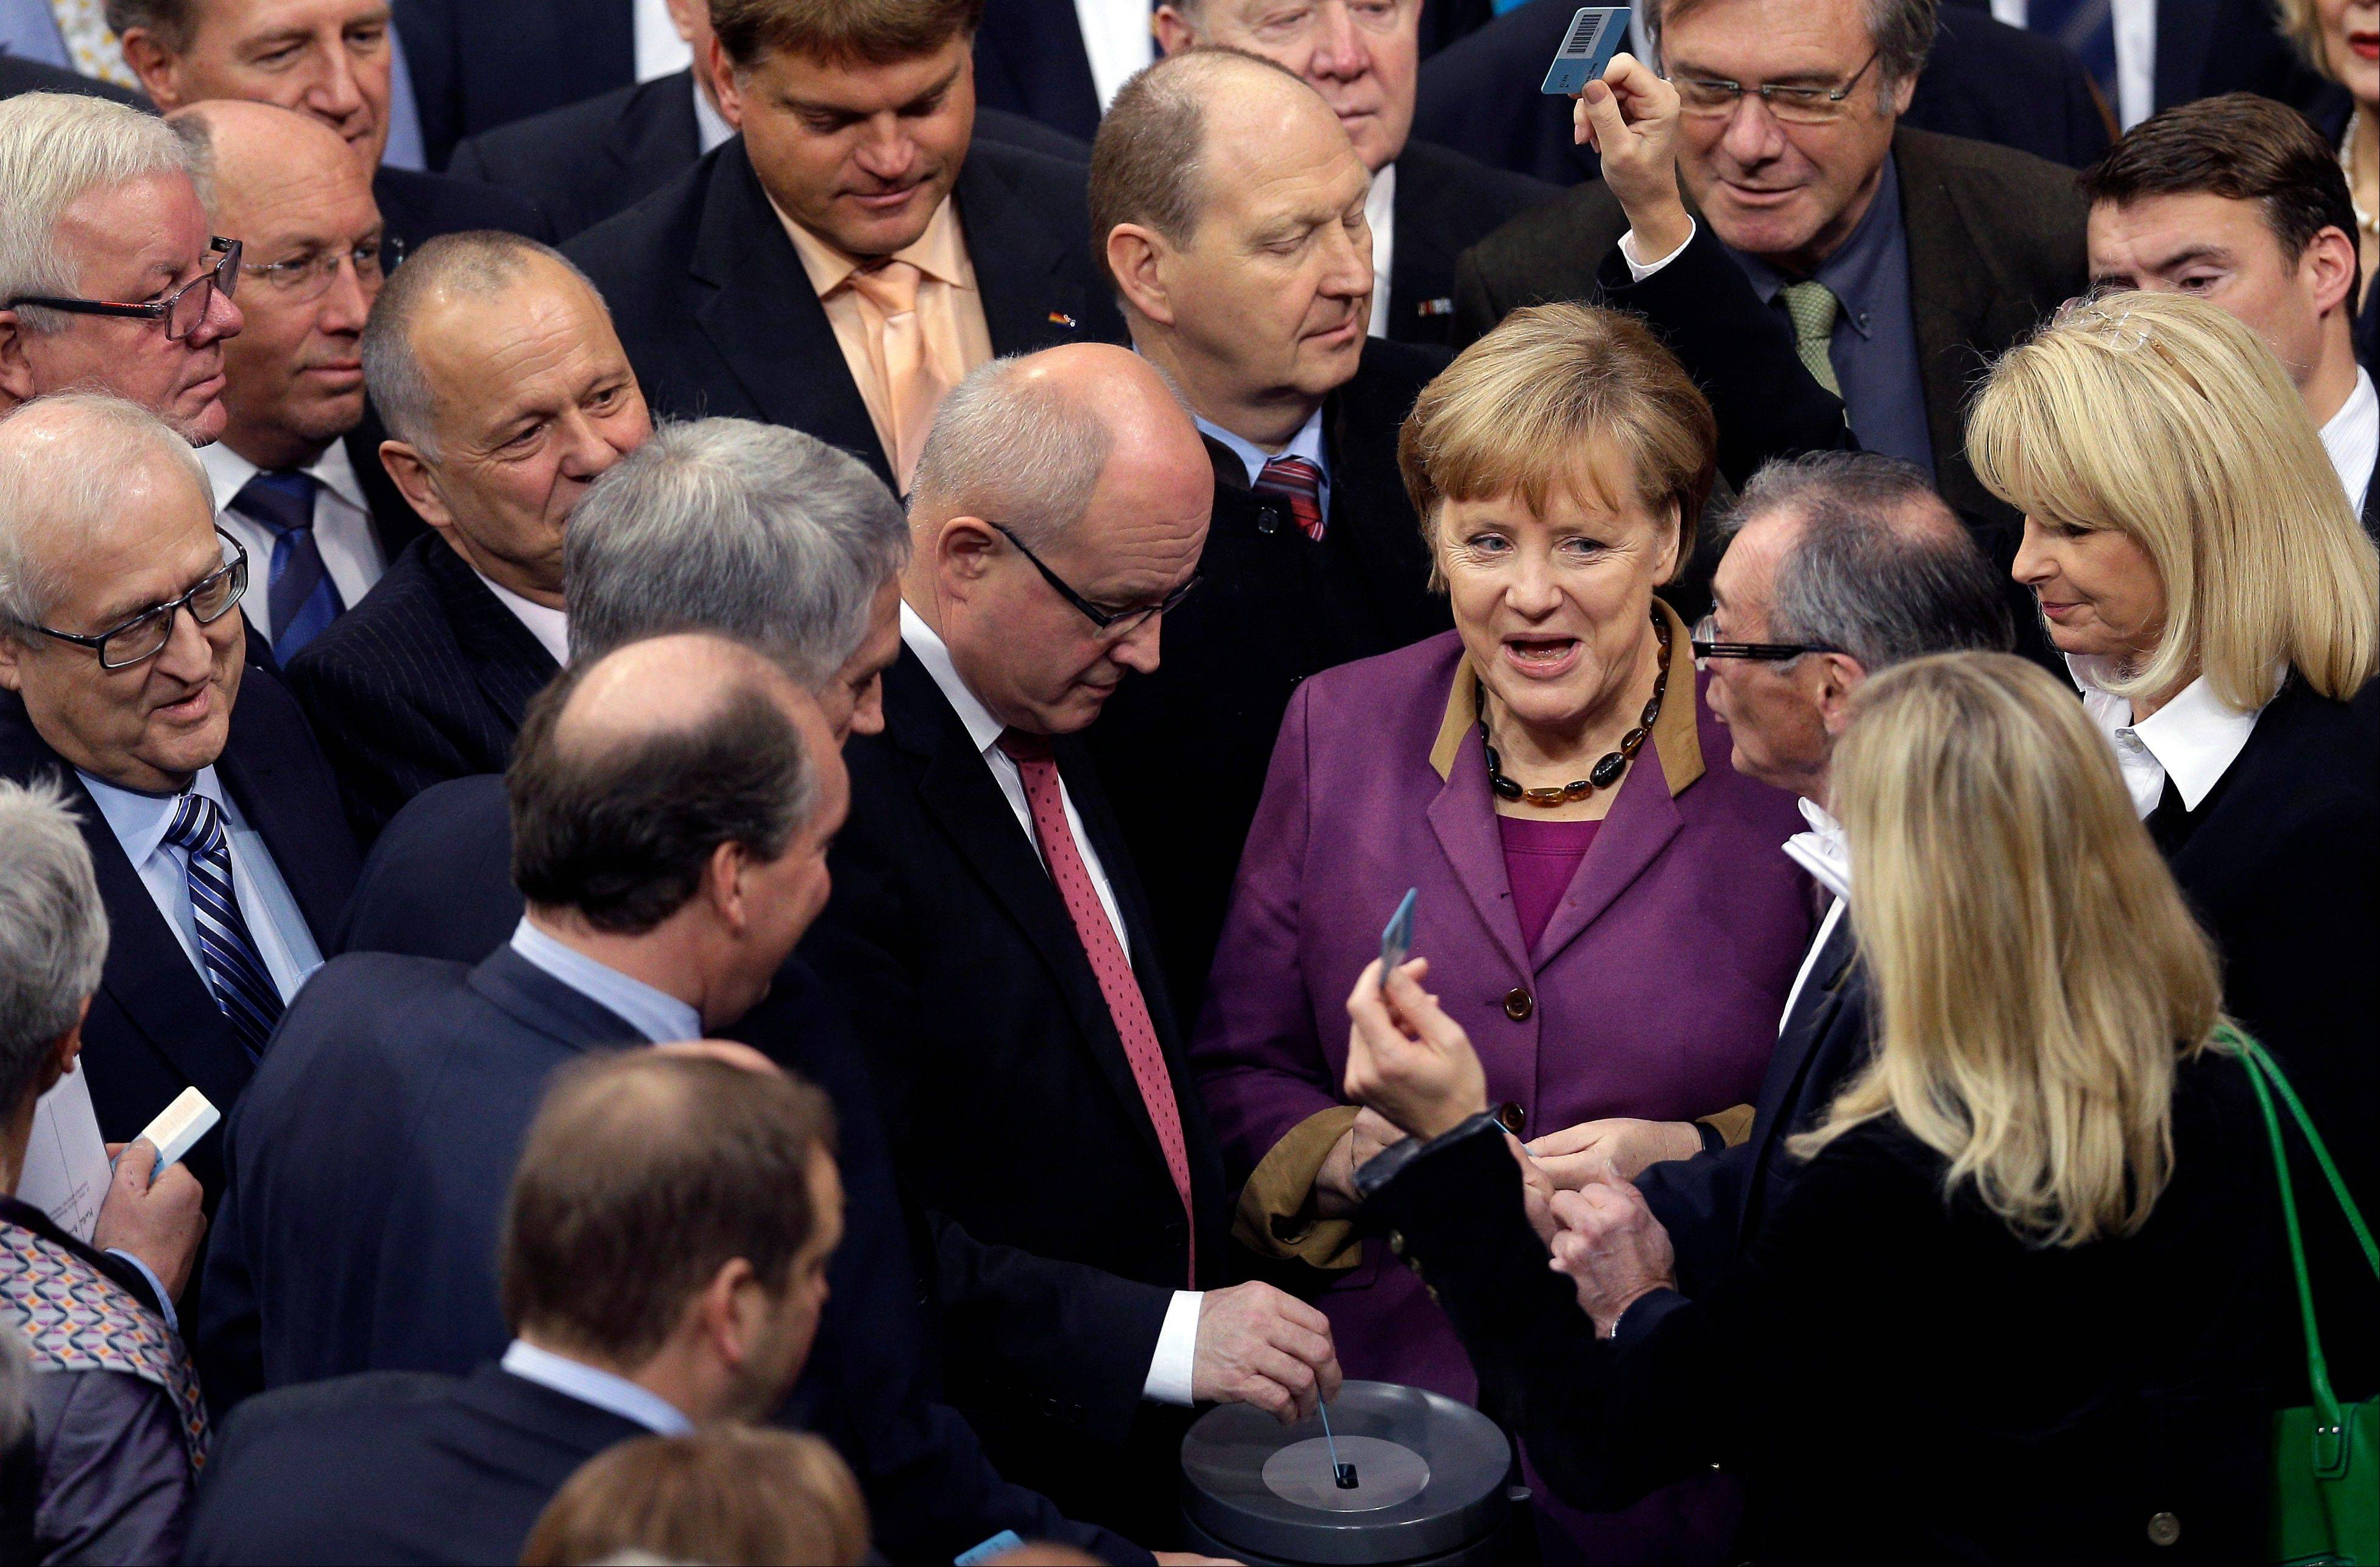 German Chancellor Angela Merkel casts her vote Friday at the German federal parliament, Bundestag, in Berlin, Germany. The German Parliament has given its overwhelming backing to a deal aimed at trimming Greece's debt load and keeping the country financially afloat.